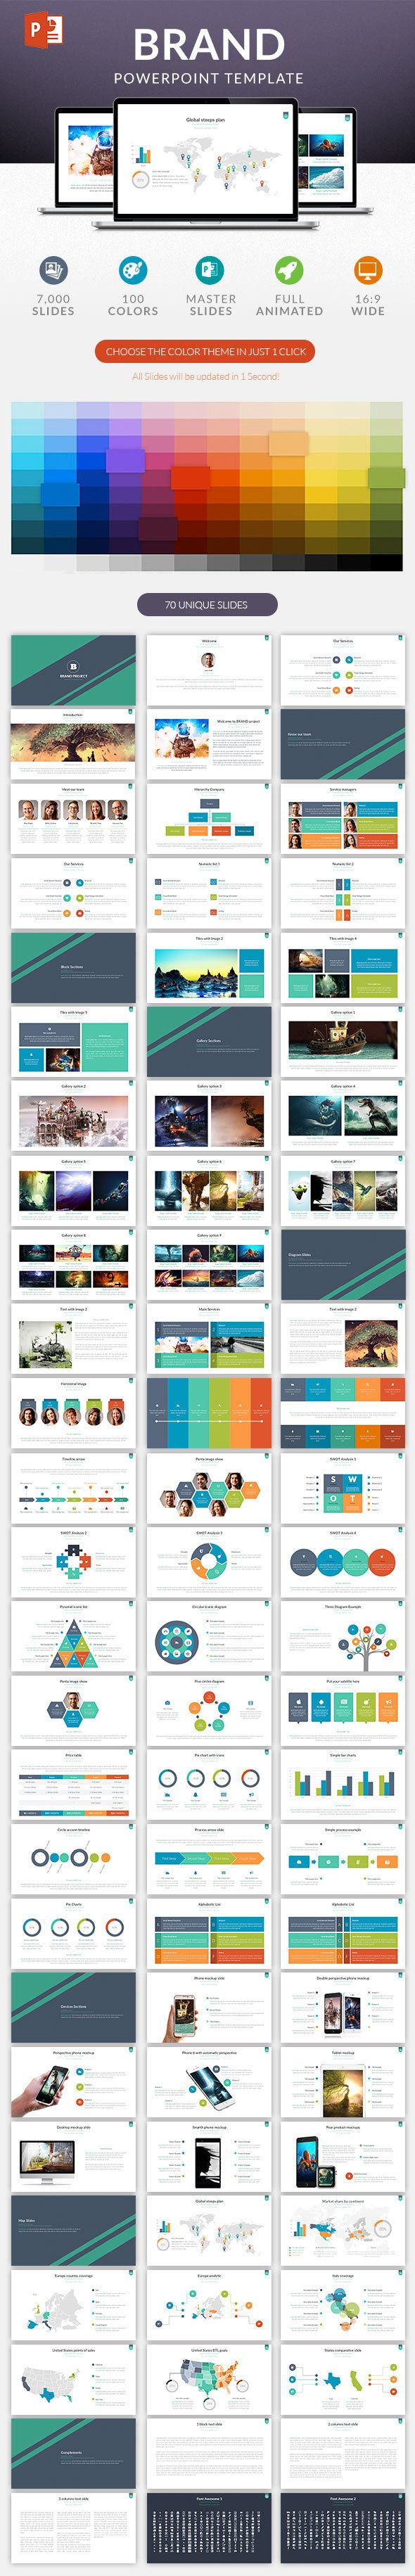 Powerpoint Template #design #slides Download: http://graphicriver.net/item/brand-powerpoint-template/13556850?ref=ksioks